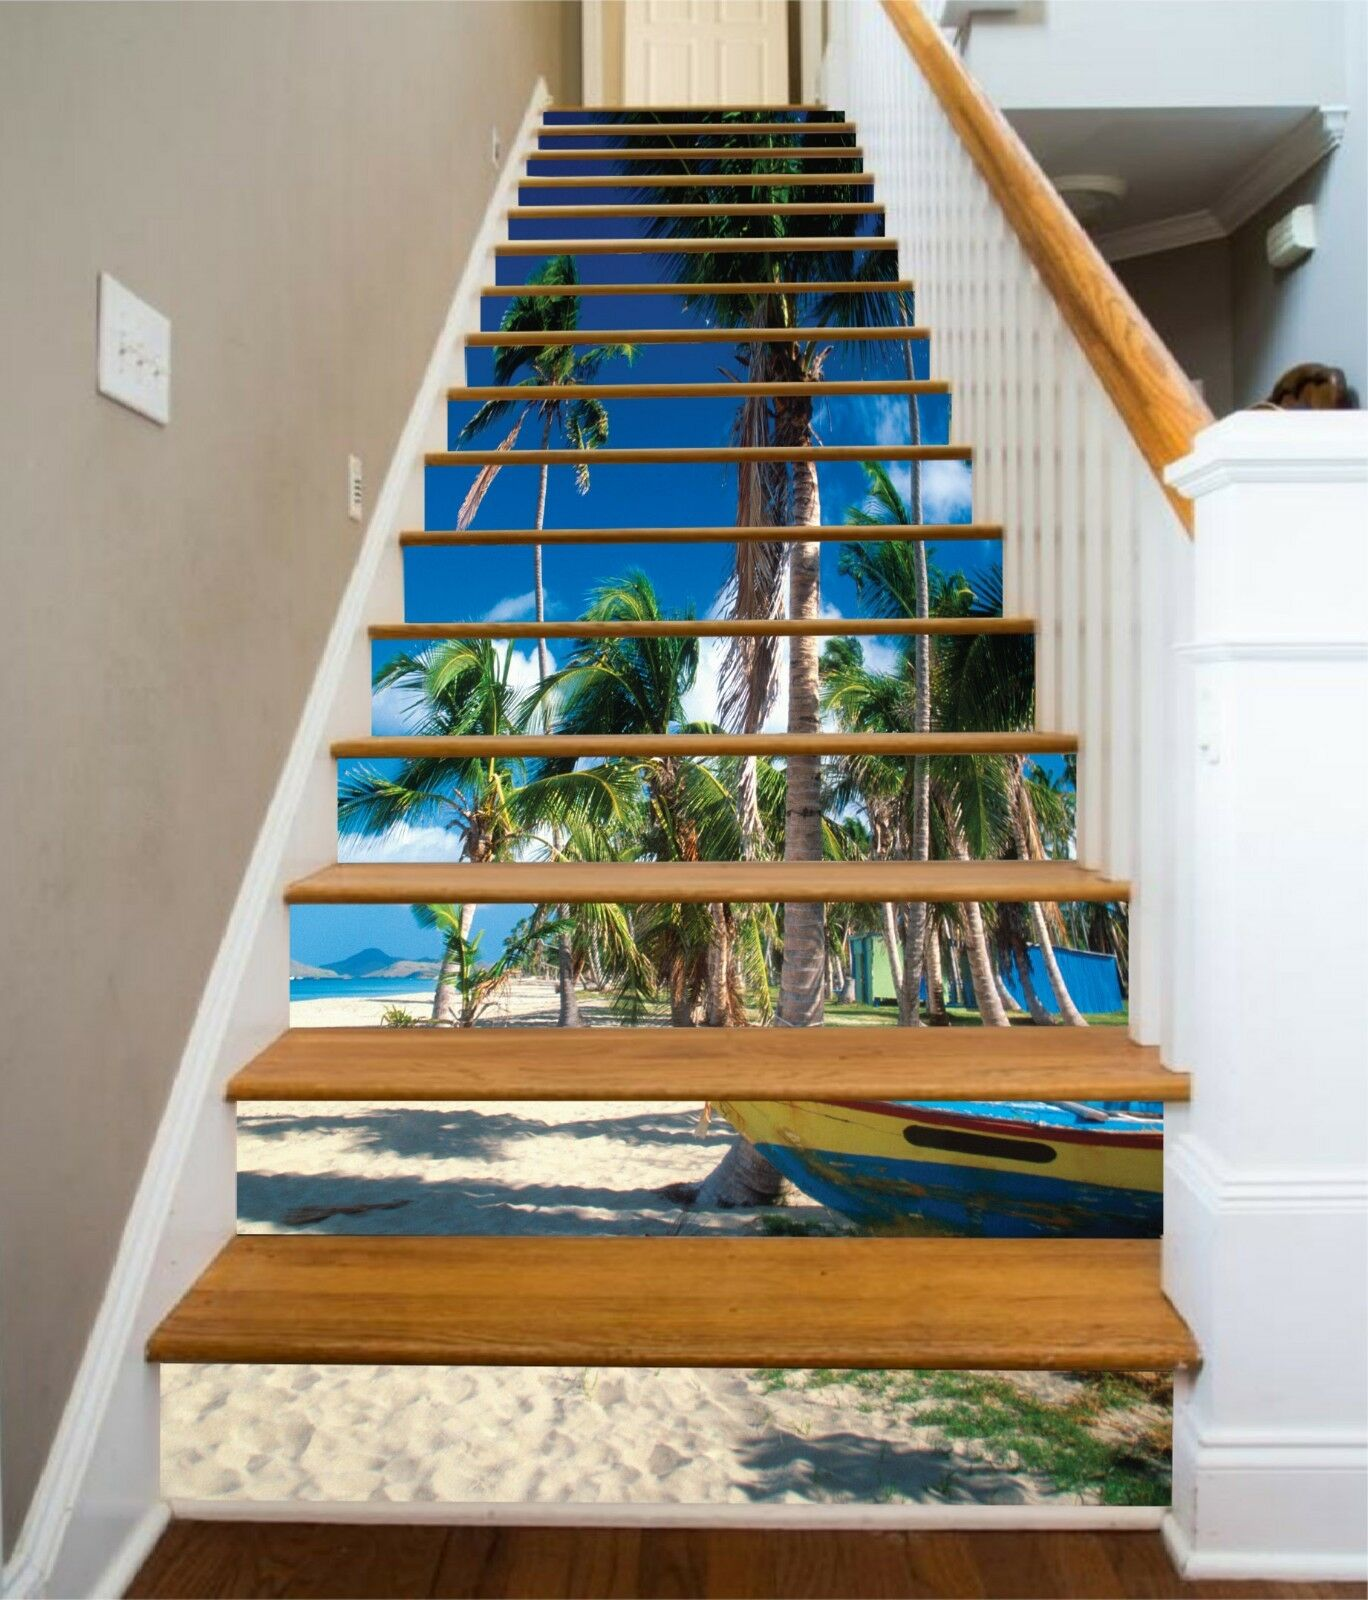 3D Boat Trees Beach Stair Risers Decoration Photo Mural Vinyl Decal Wallpaper US